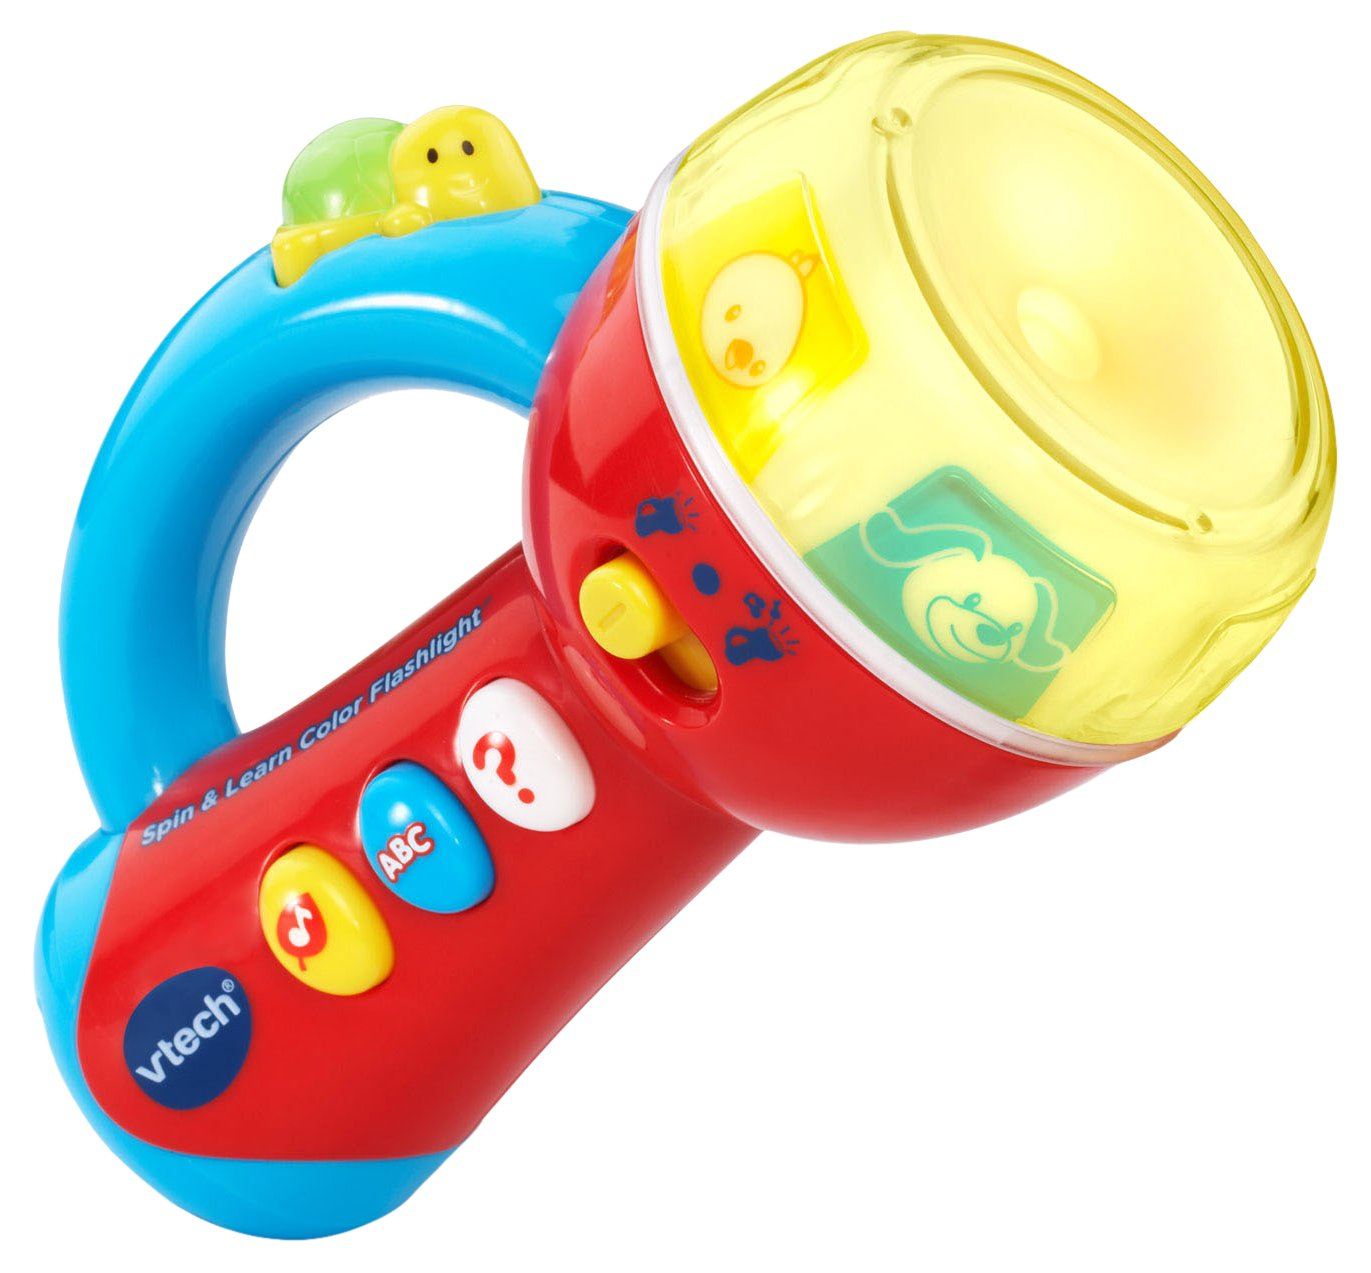 spin and learn flashlight best toys for 1 year old boys